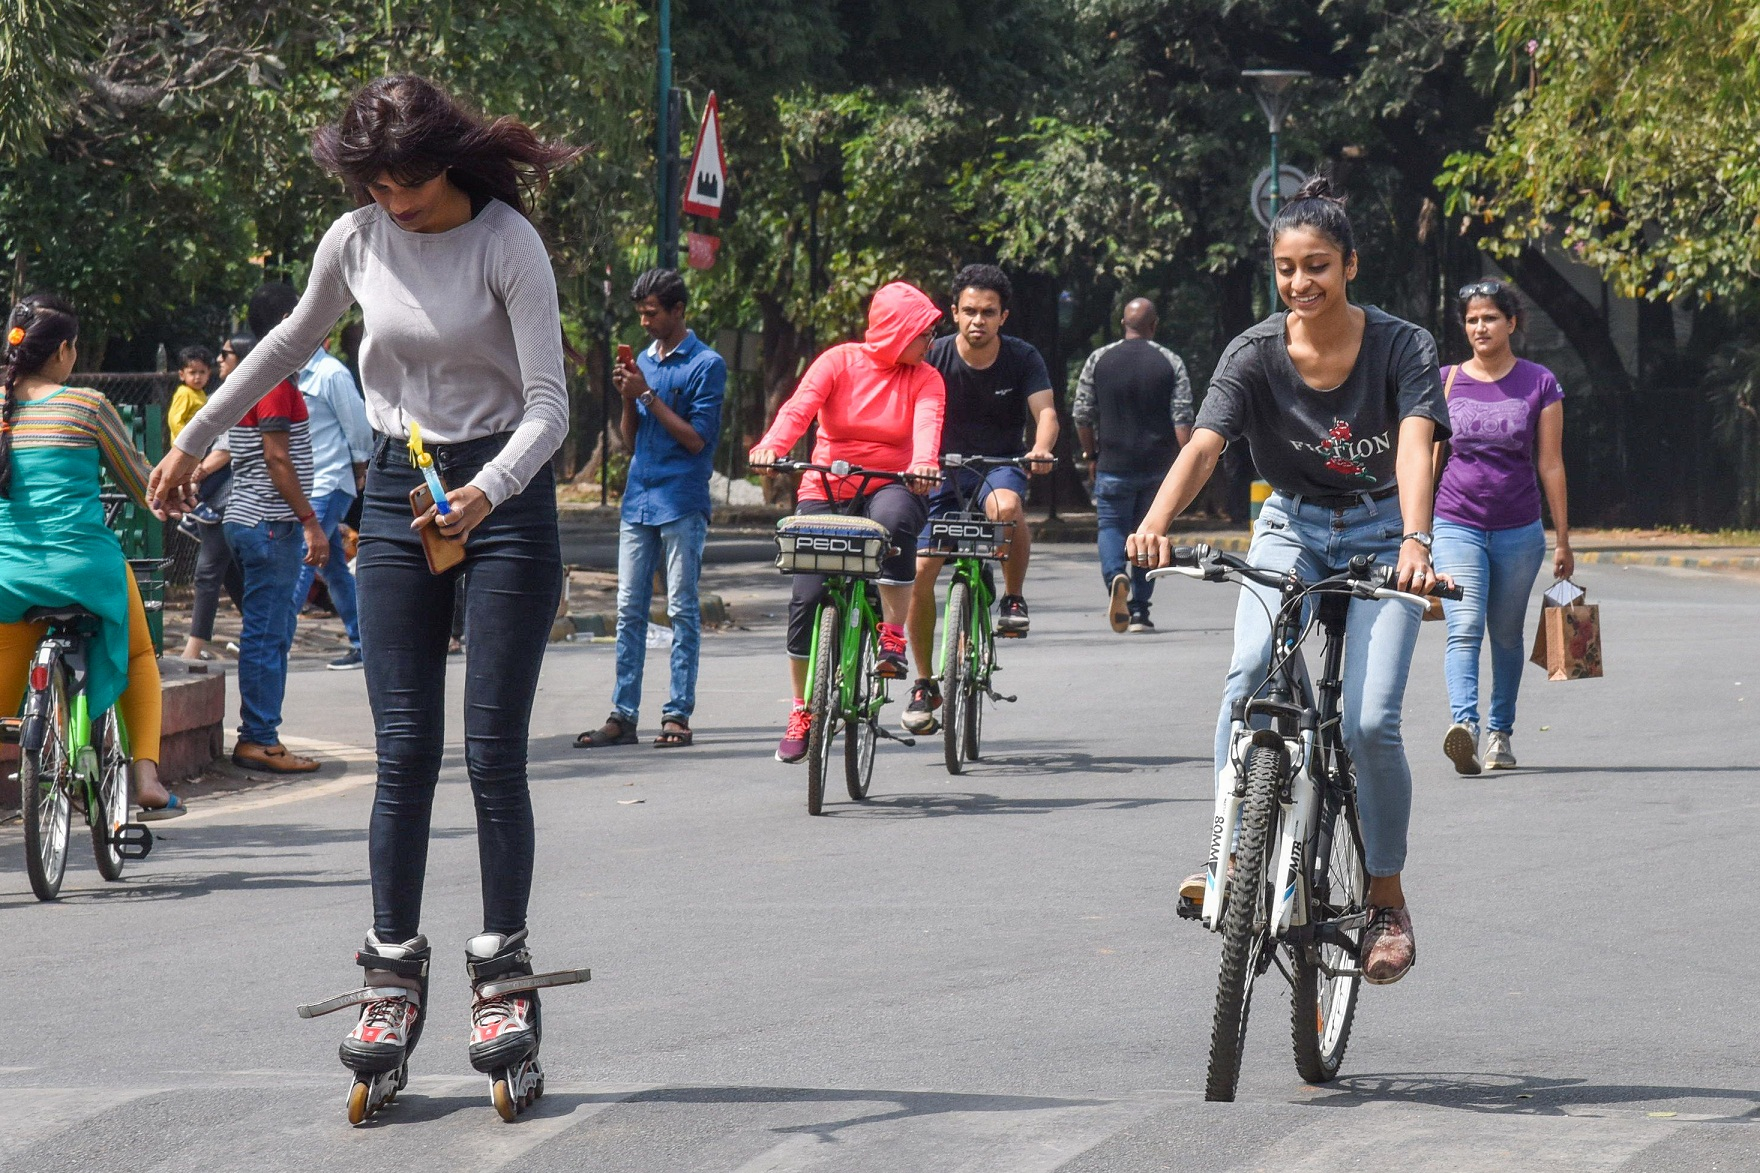 A Cubbon Park scene. Young people are more diet- and excercise-conscious than older people, who eat more carbs.